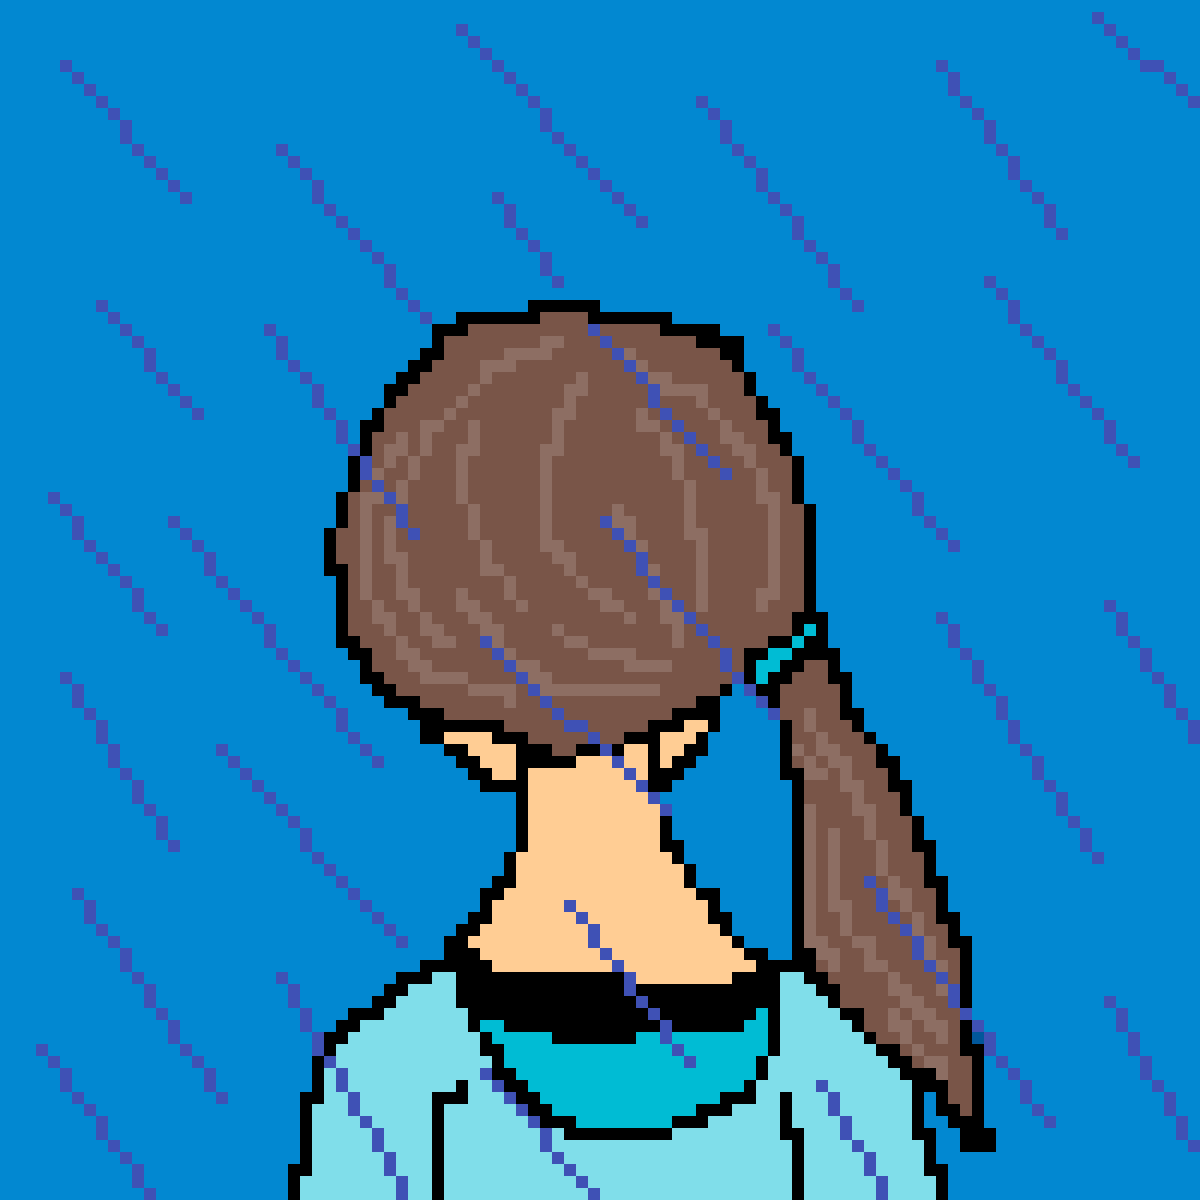 Those rainy spring mornings by Avacodoiscool